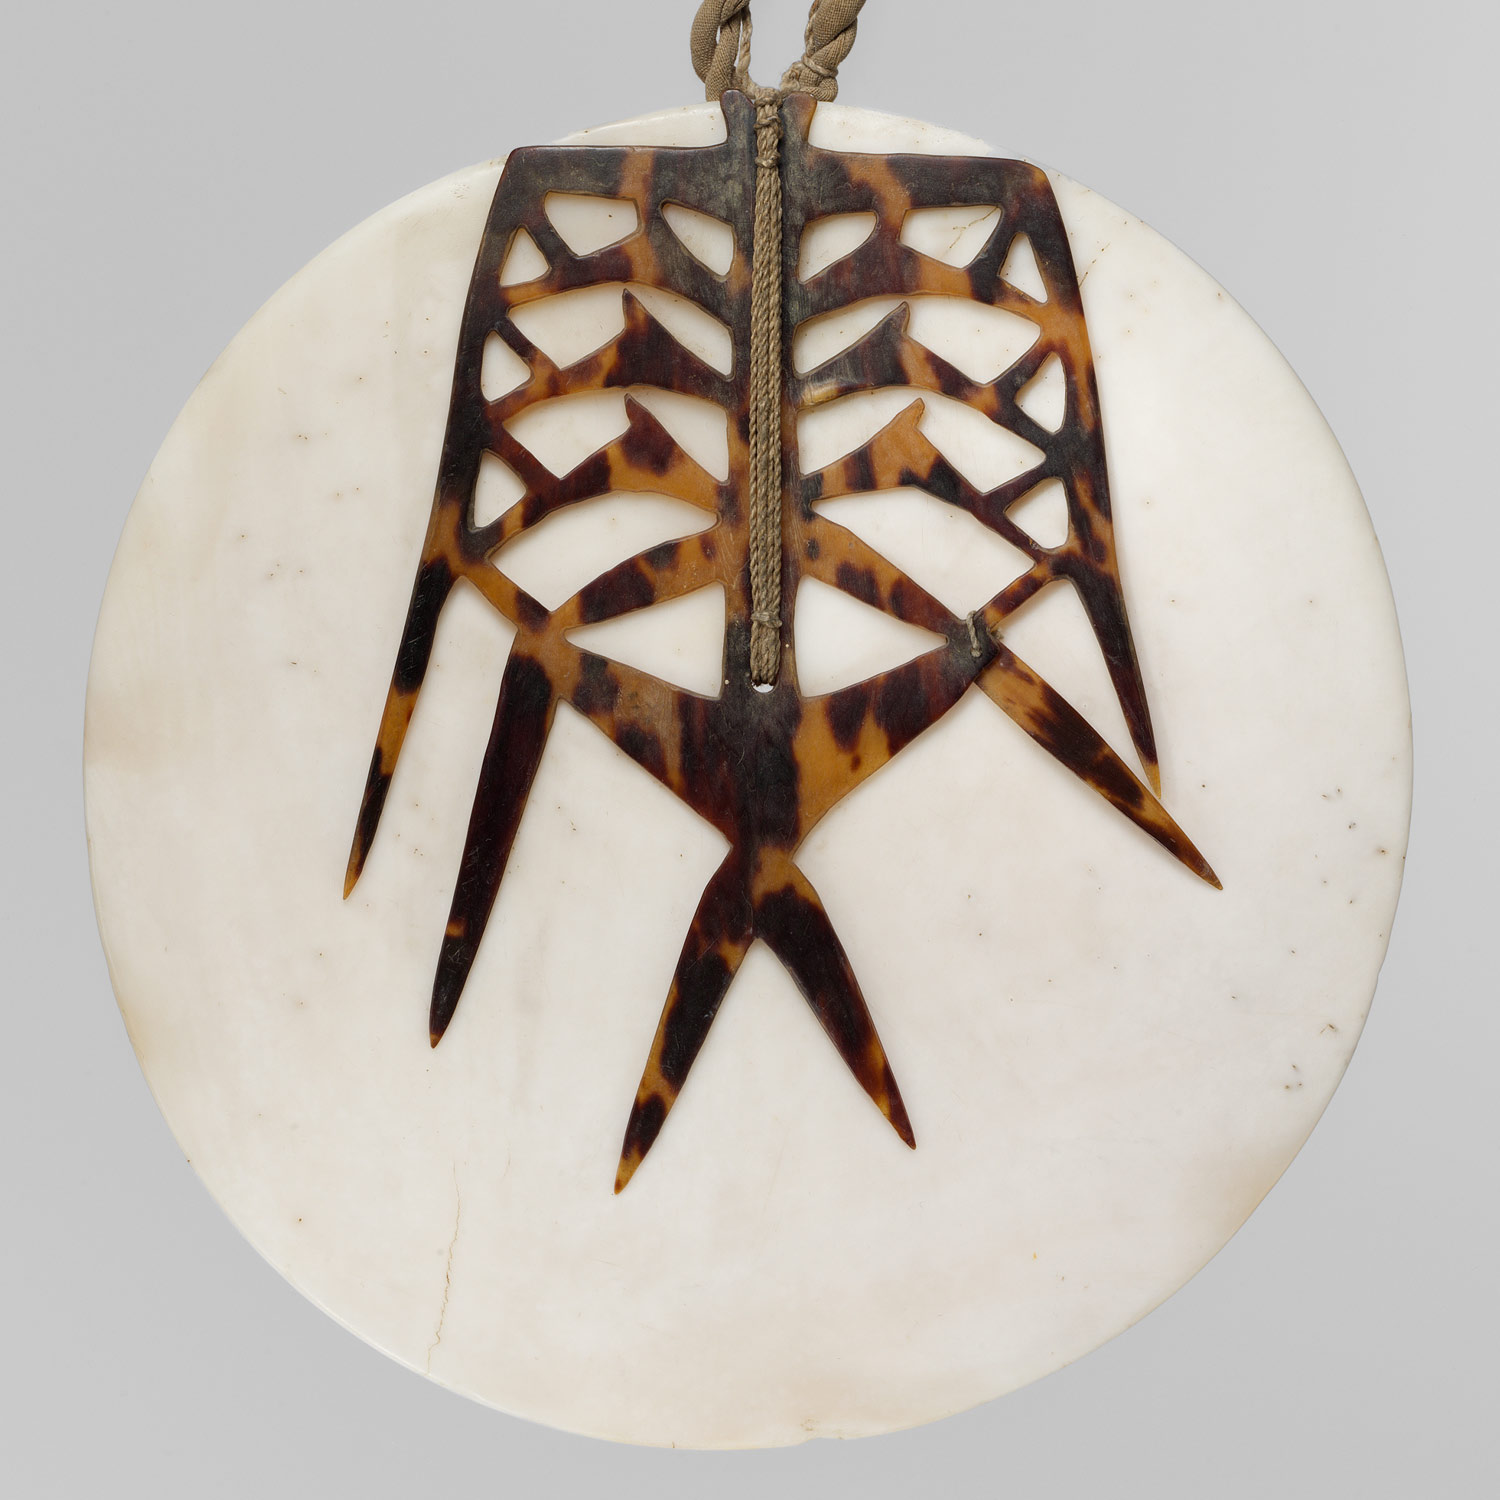 Breastplate (Tema, Tambe, or Tepatu)